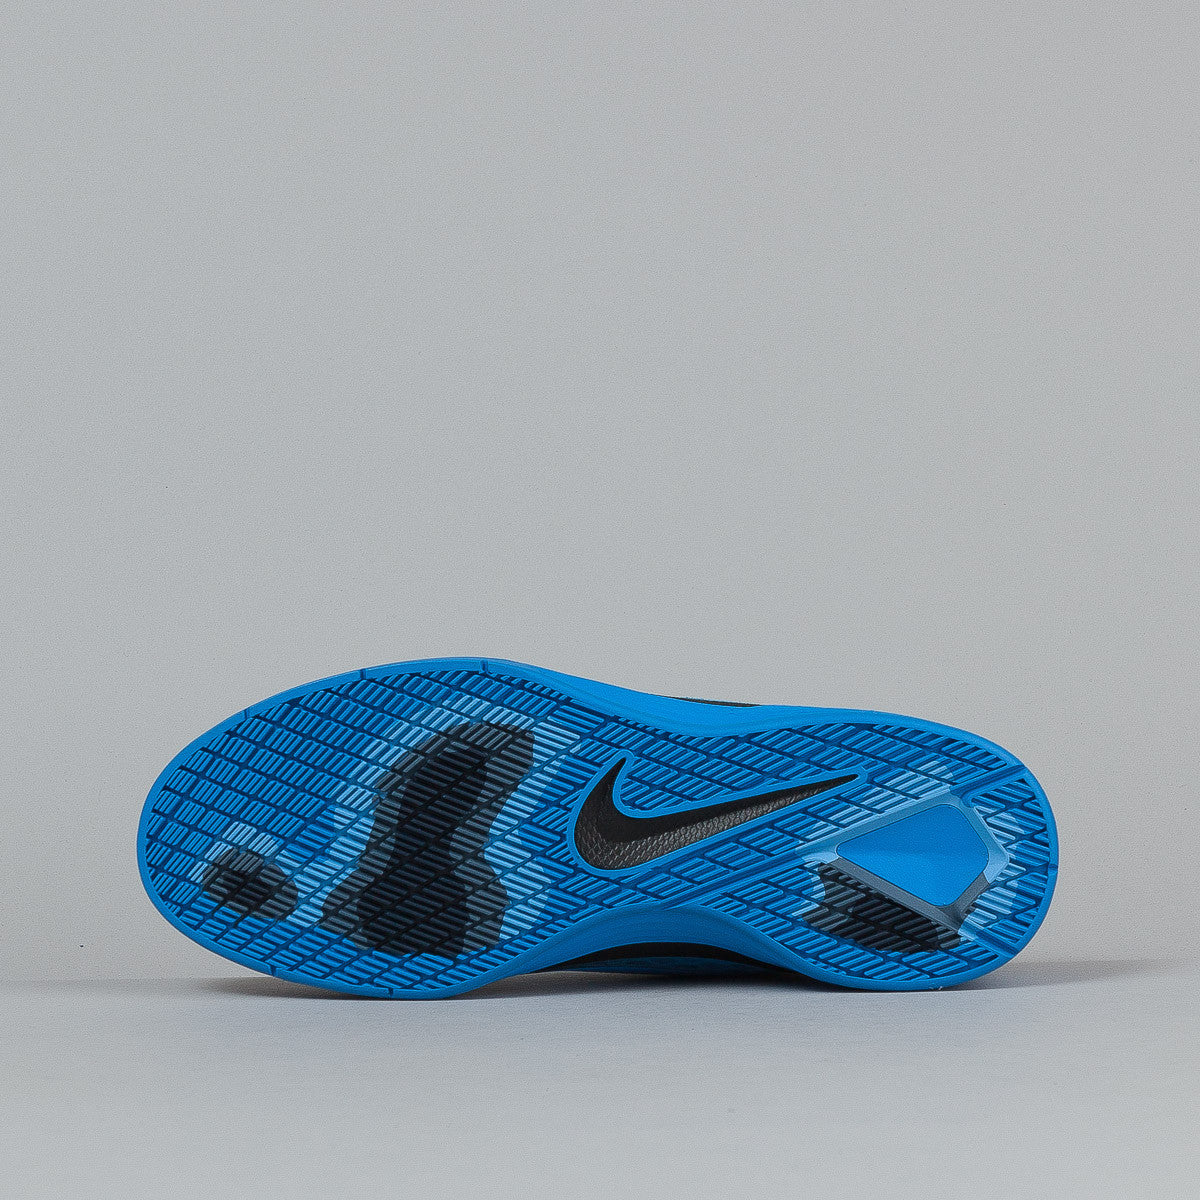 Nike SB Paul Rodriguez 8 Black / Photo Blue - Obsidian